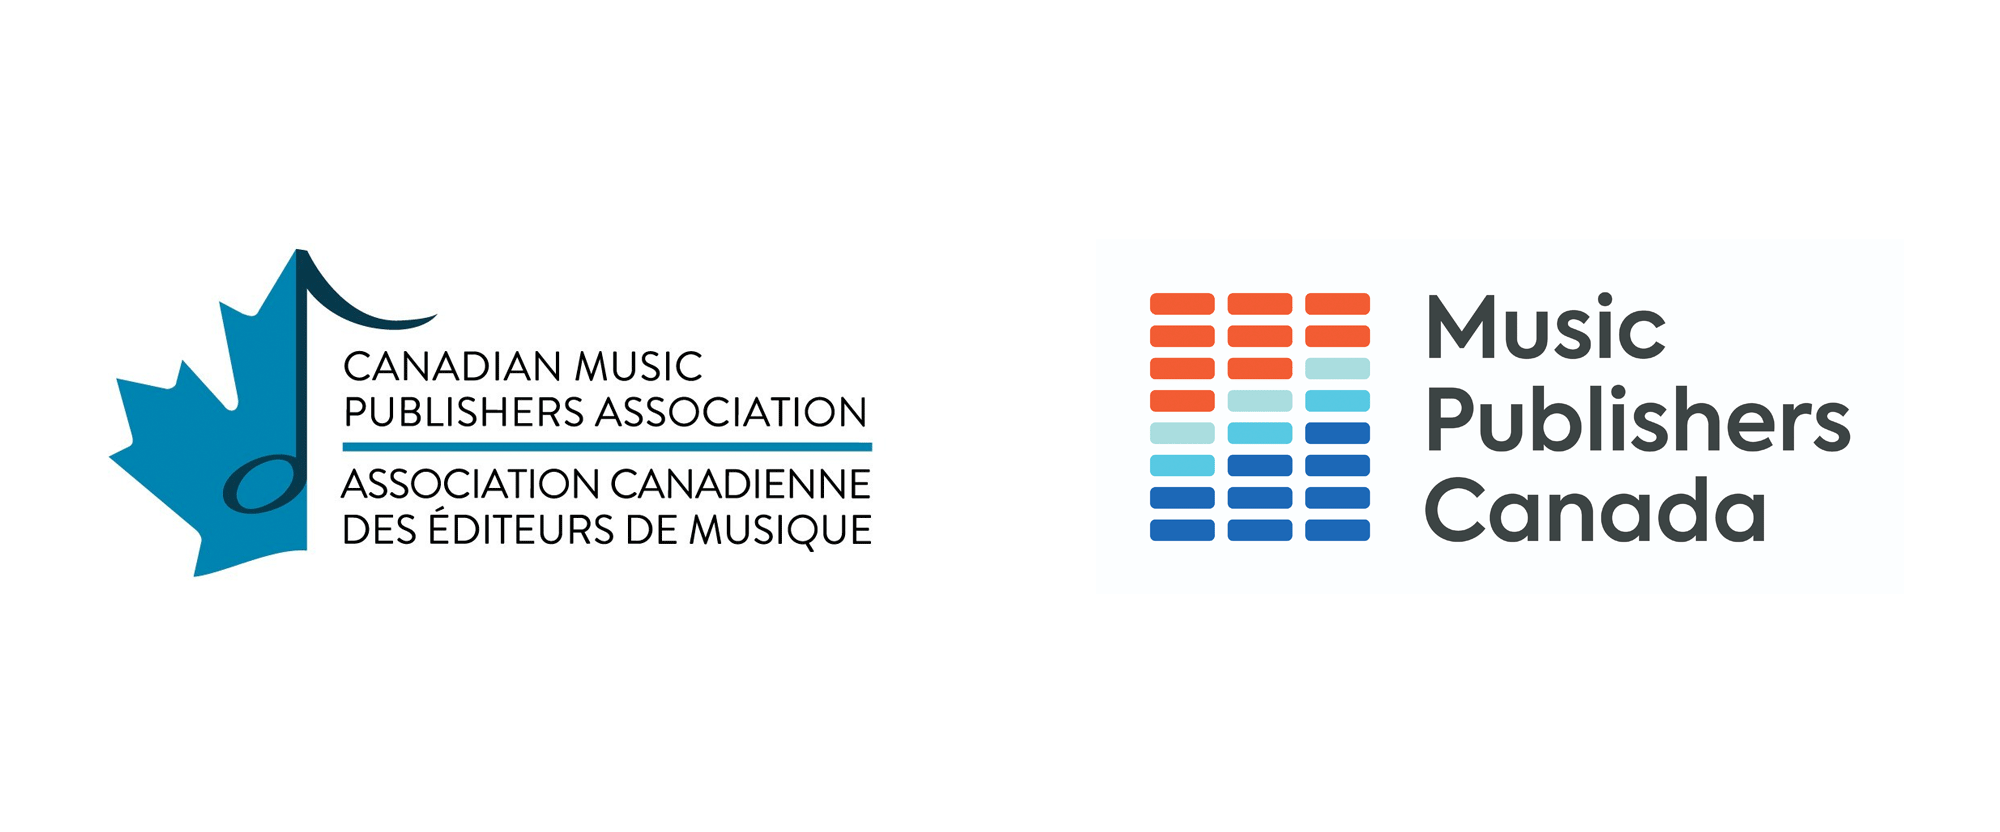 New Name and Logo for Music Publishers Canada